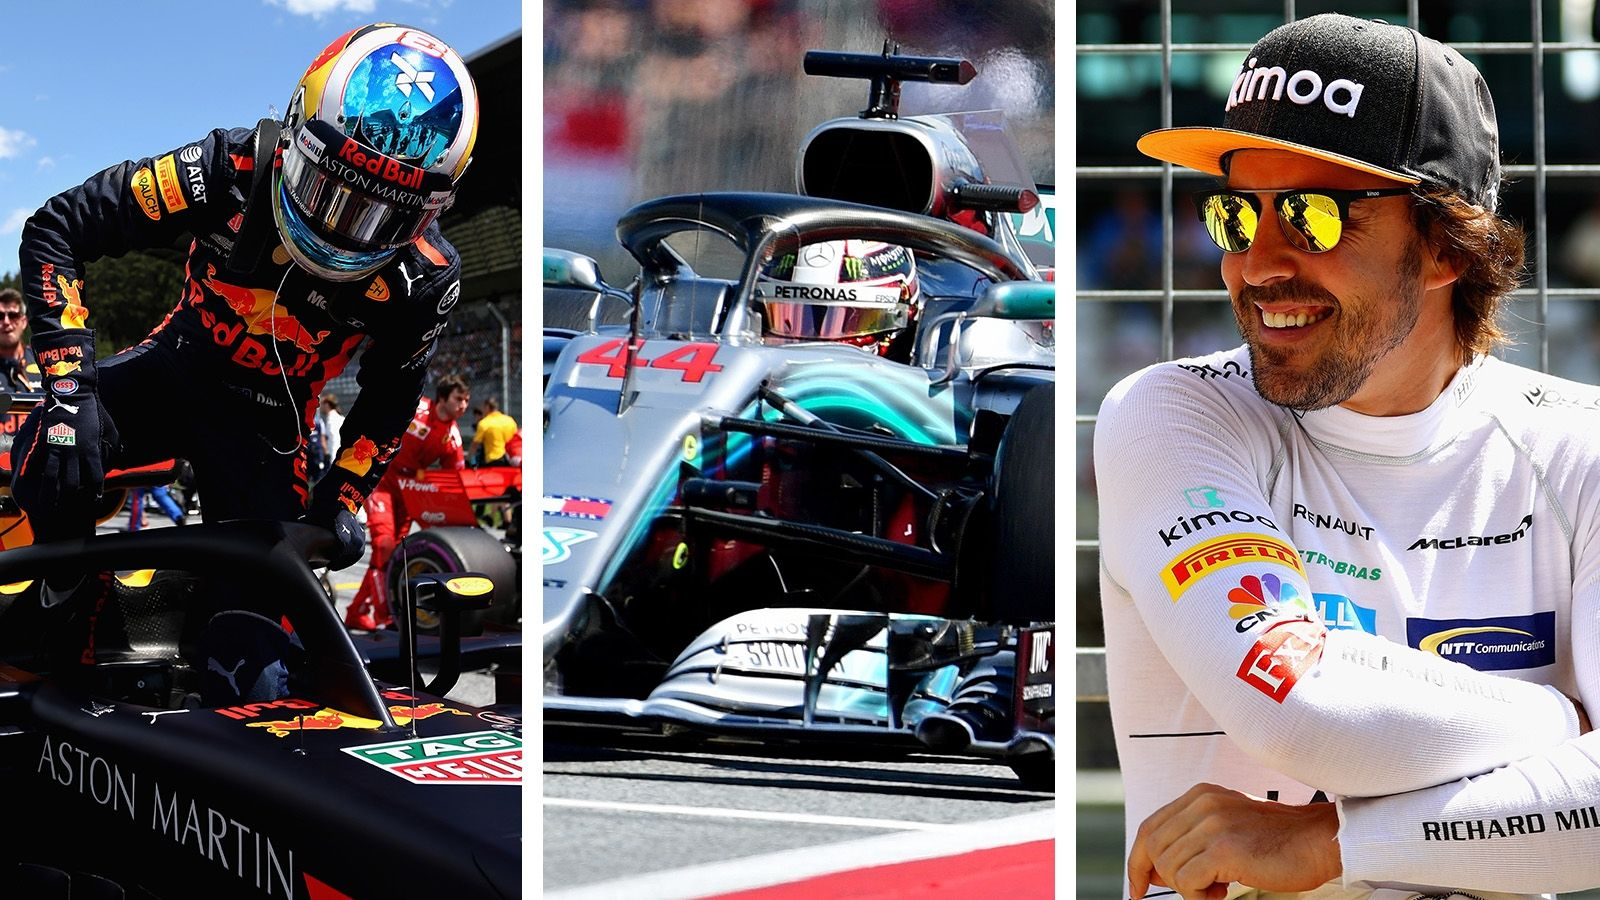 What did we learn from the Austrian Grand Prix?